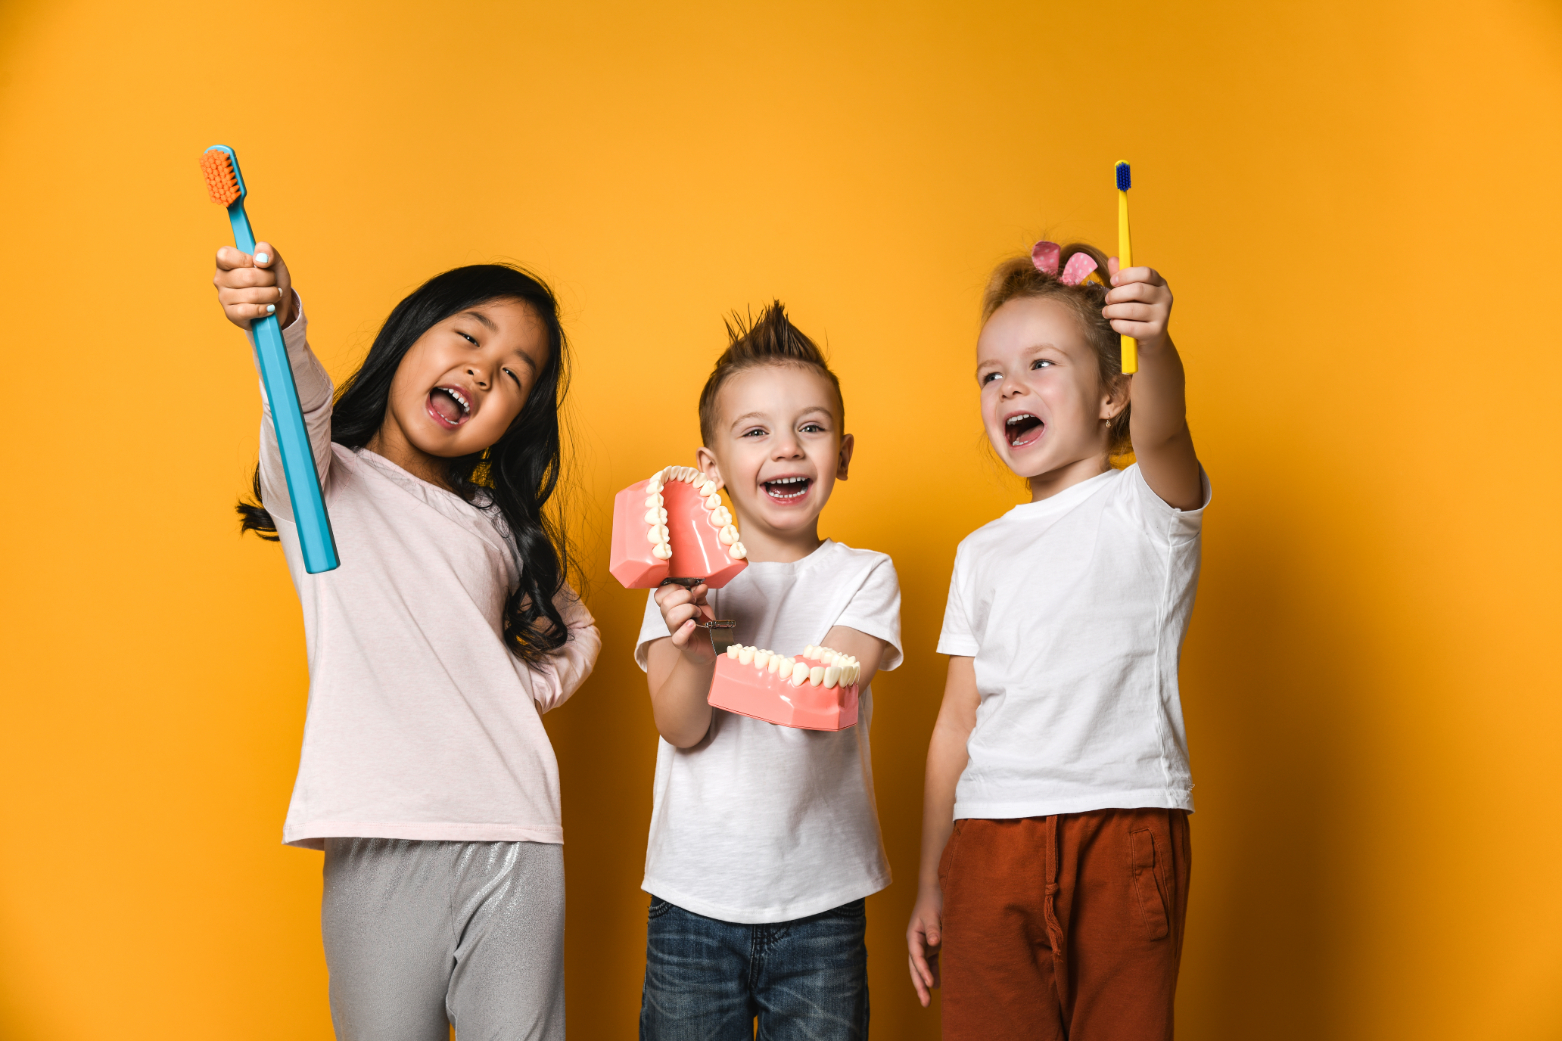 How can I help my child to have a positive dental visit?